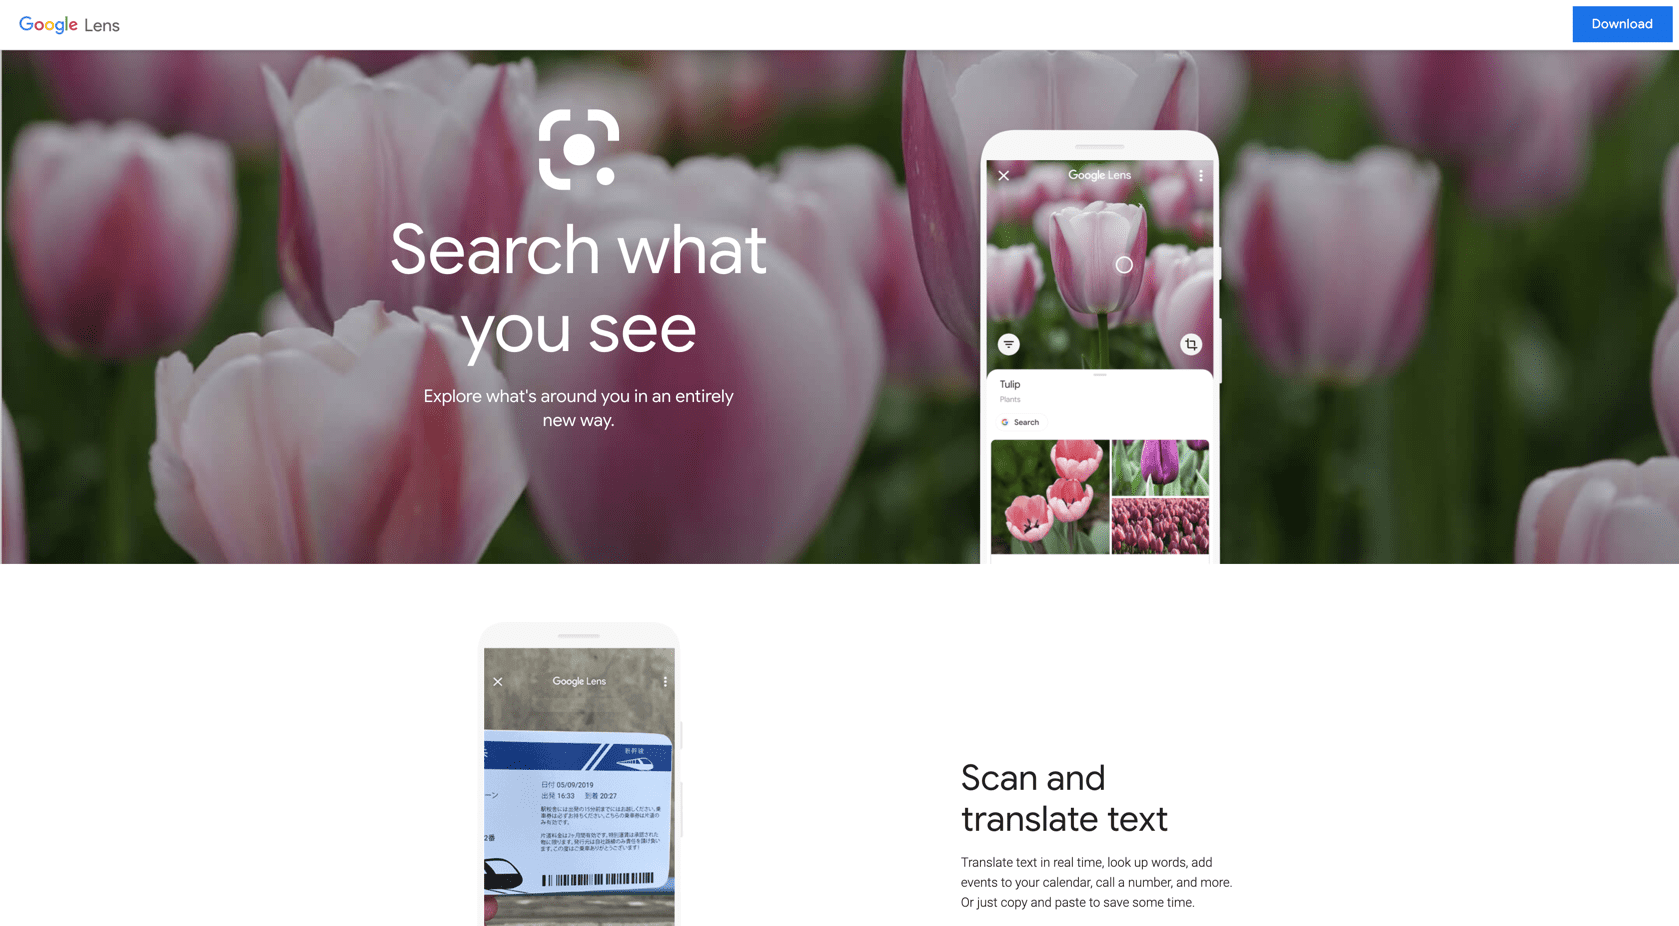 3-ways-visual-search-can-boost-your-brand 3 Ways Visual Search Can Boost Your Brand